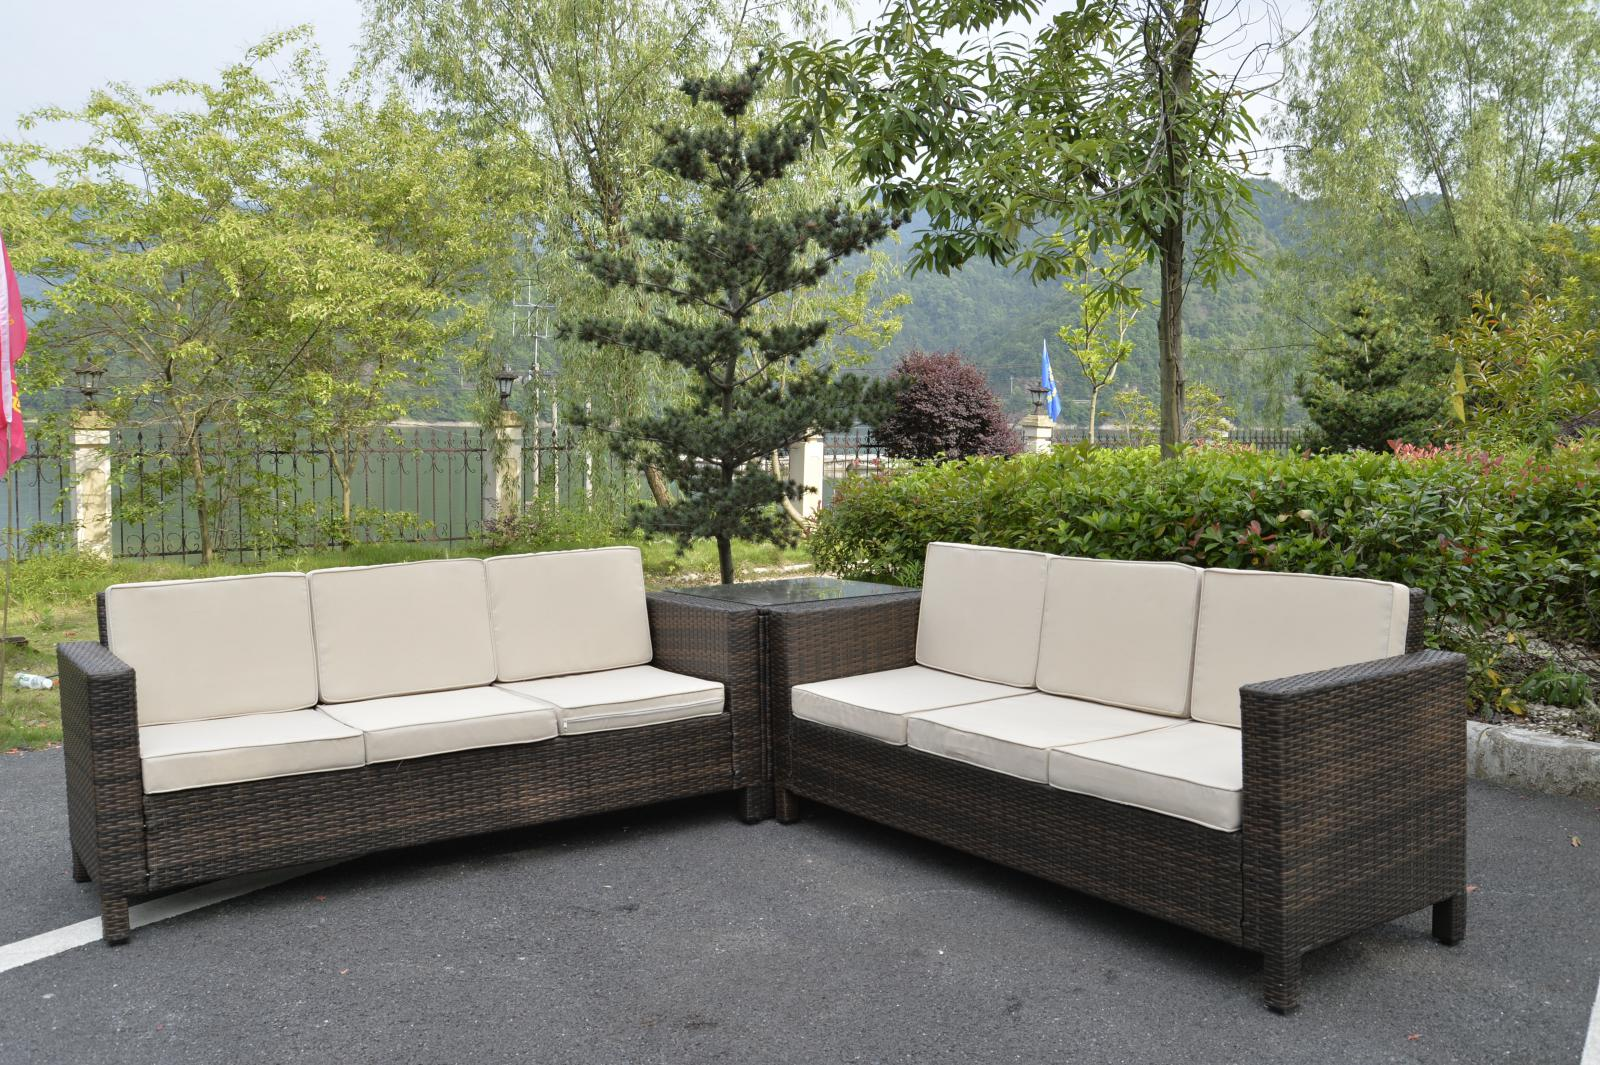 Rattan Garden Furniture Set Sofa Conservatory Outdoor Wicker Patio Weave Ebay